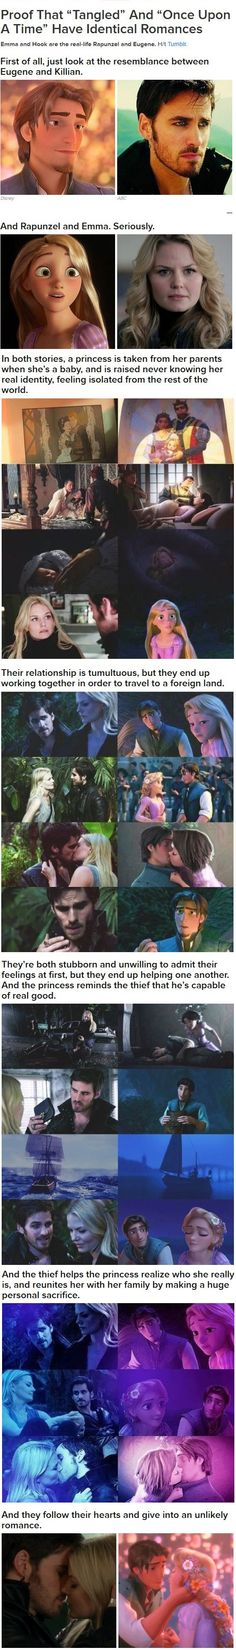 The Emma  Hook and Rapunzel  Flynn parallels Aw this is cute I just ruined once upon a time for myself however I hadnt gotten that far yet HAHAHAH